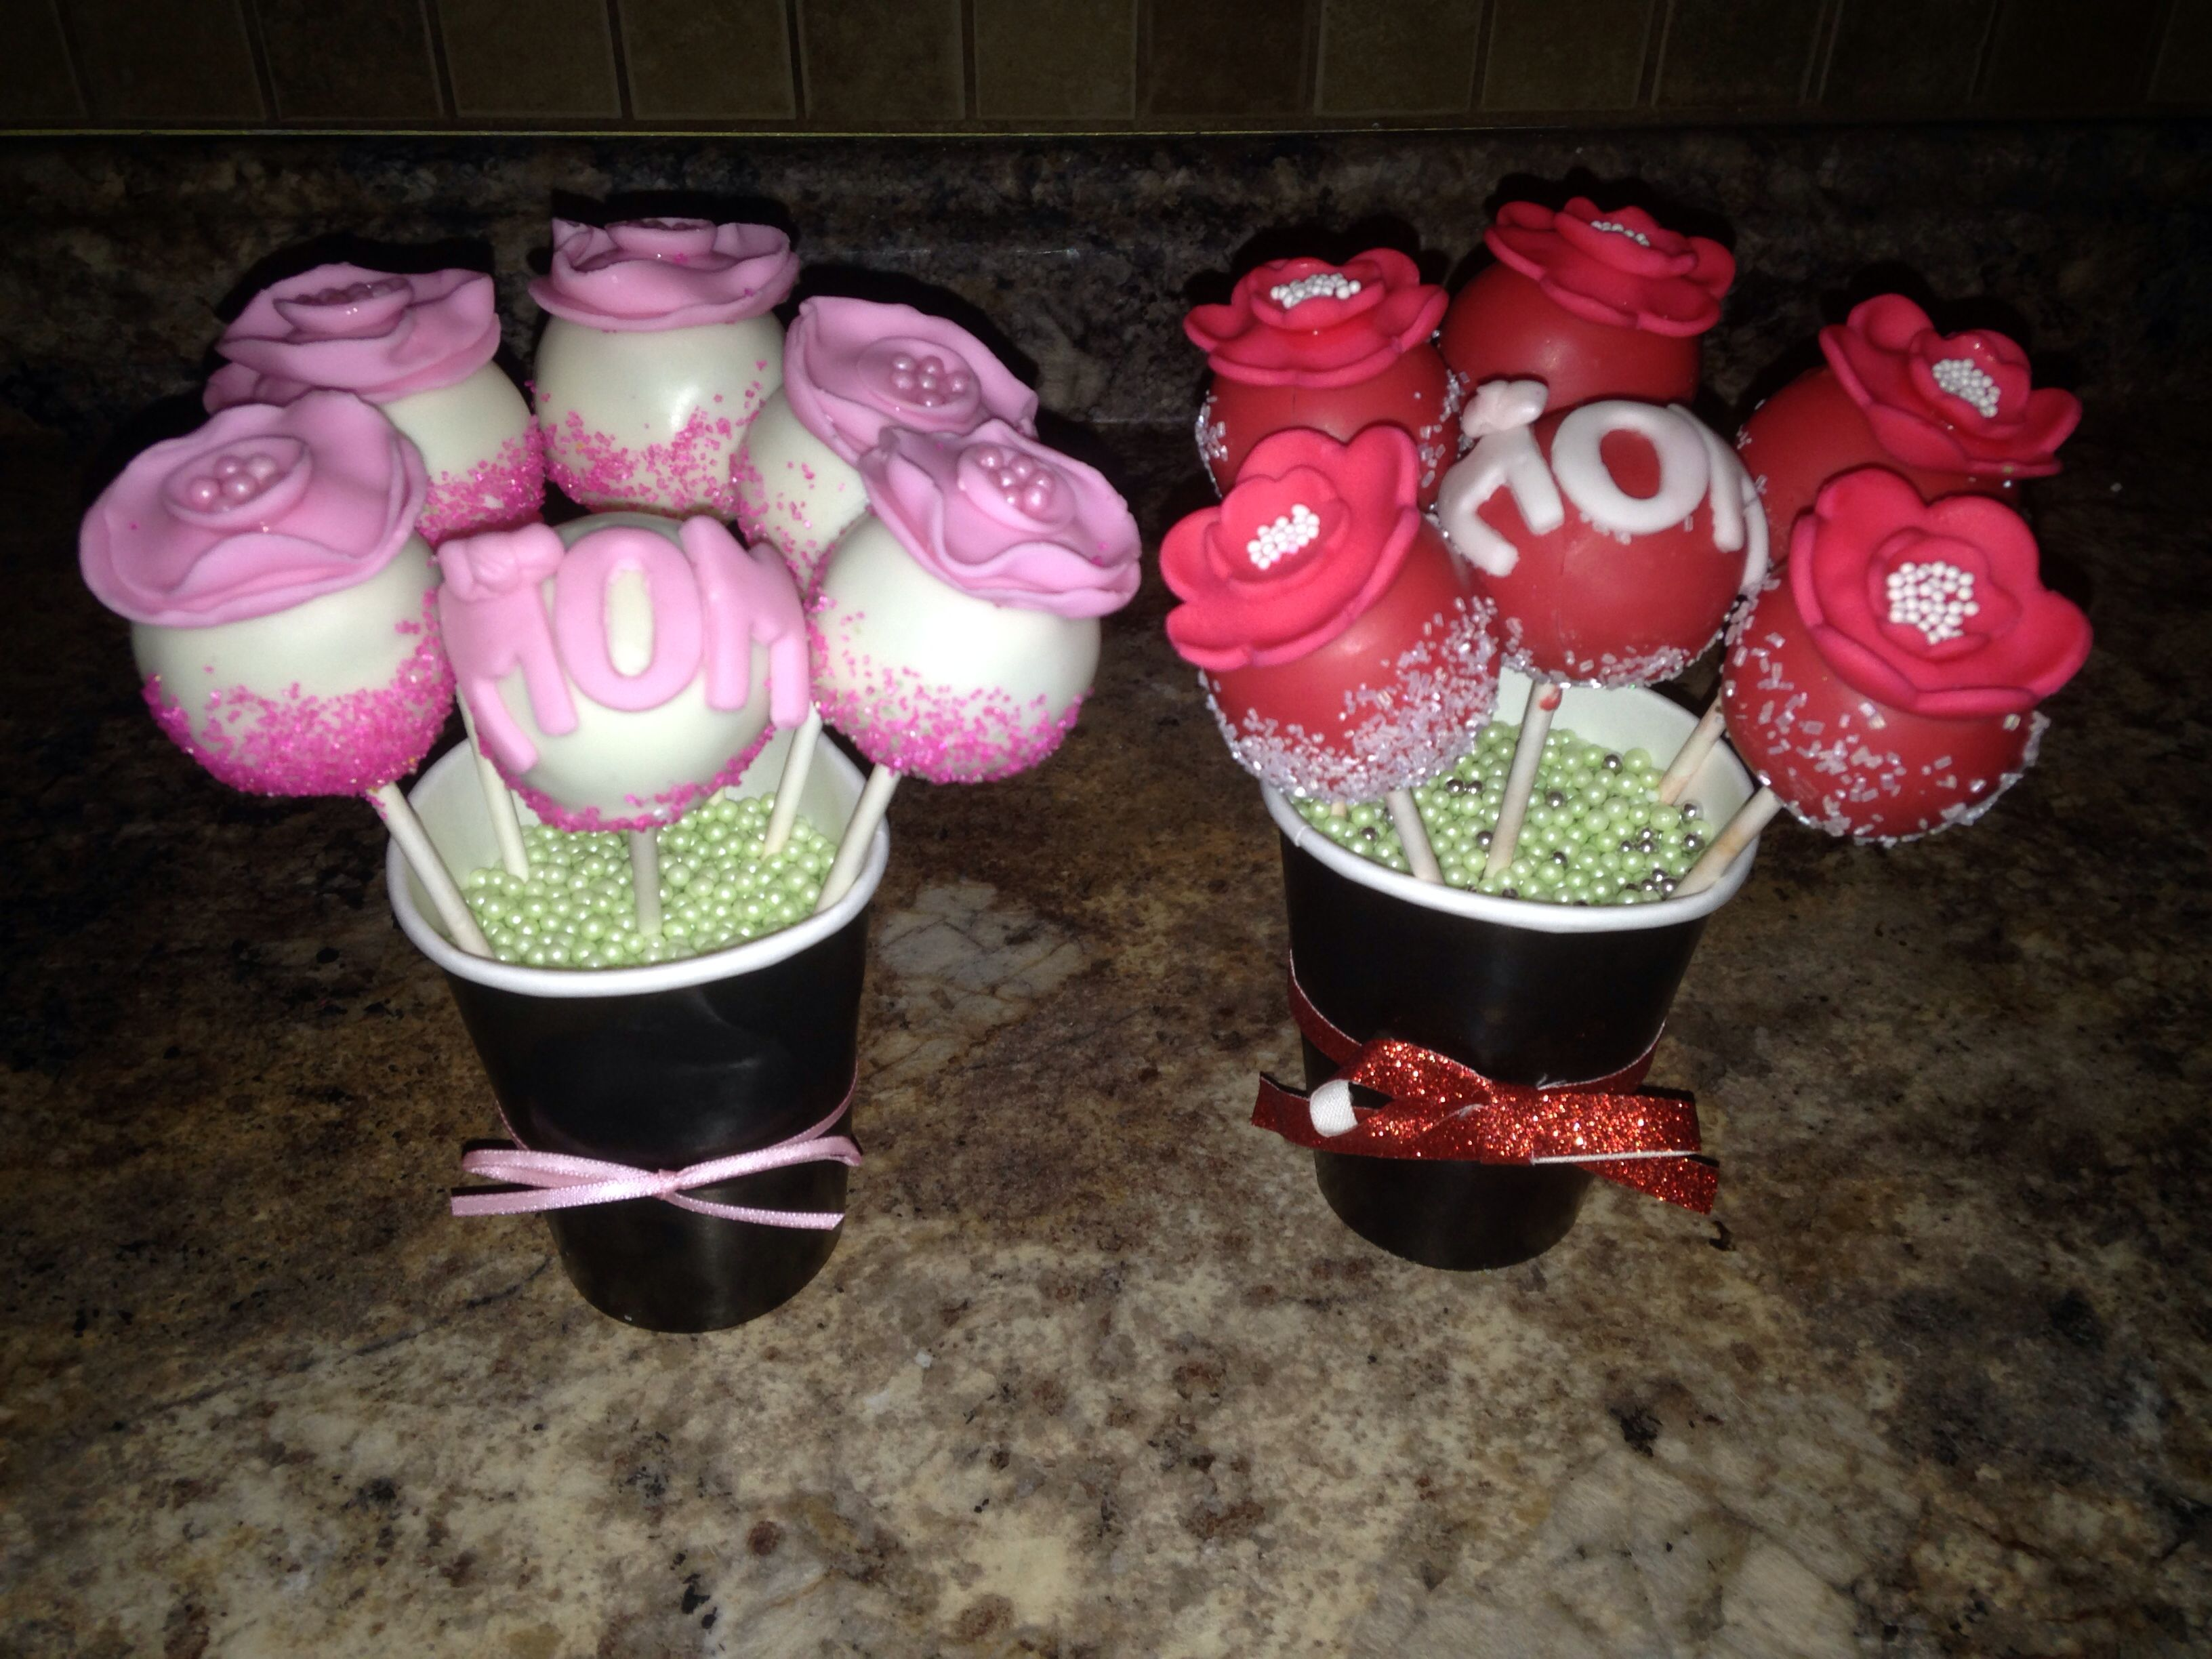 Mother's Day flower cake pops made by me, SweetEms Cakery!